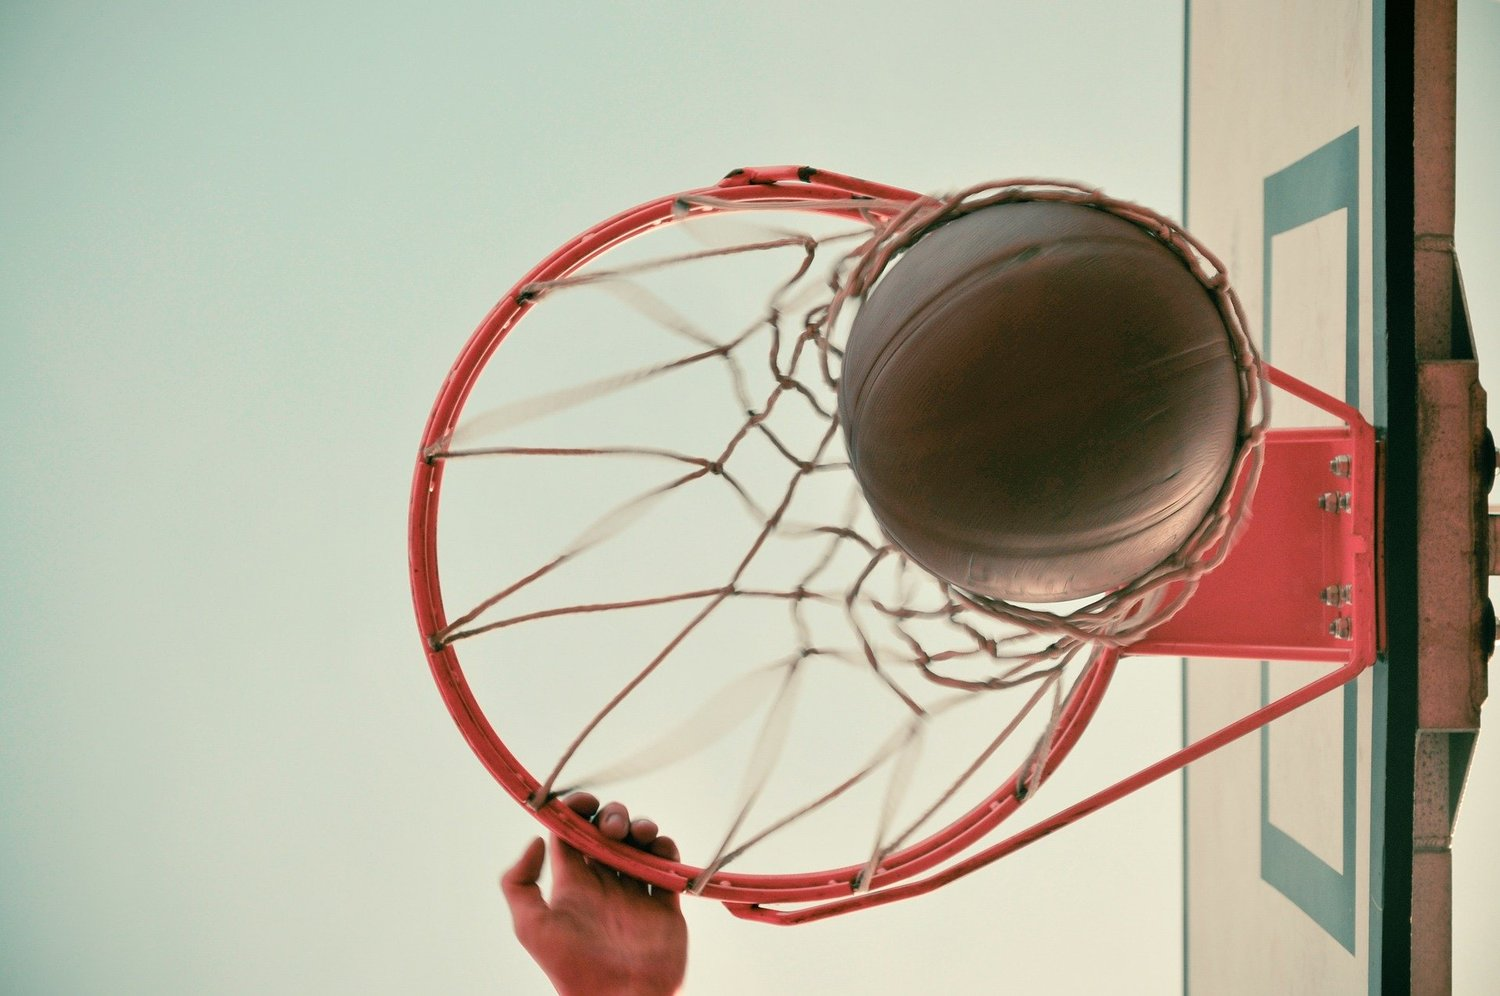 A basketball exits the net.